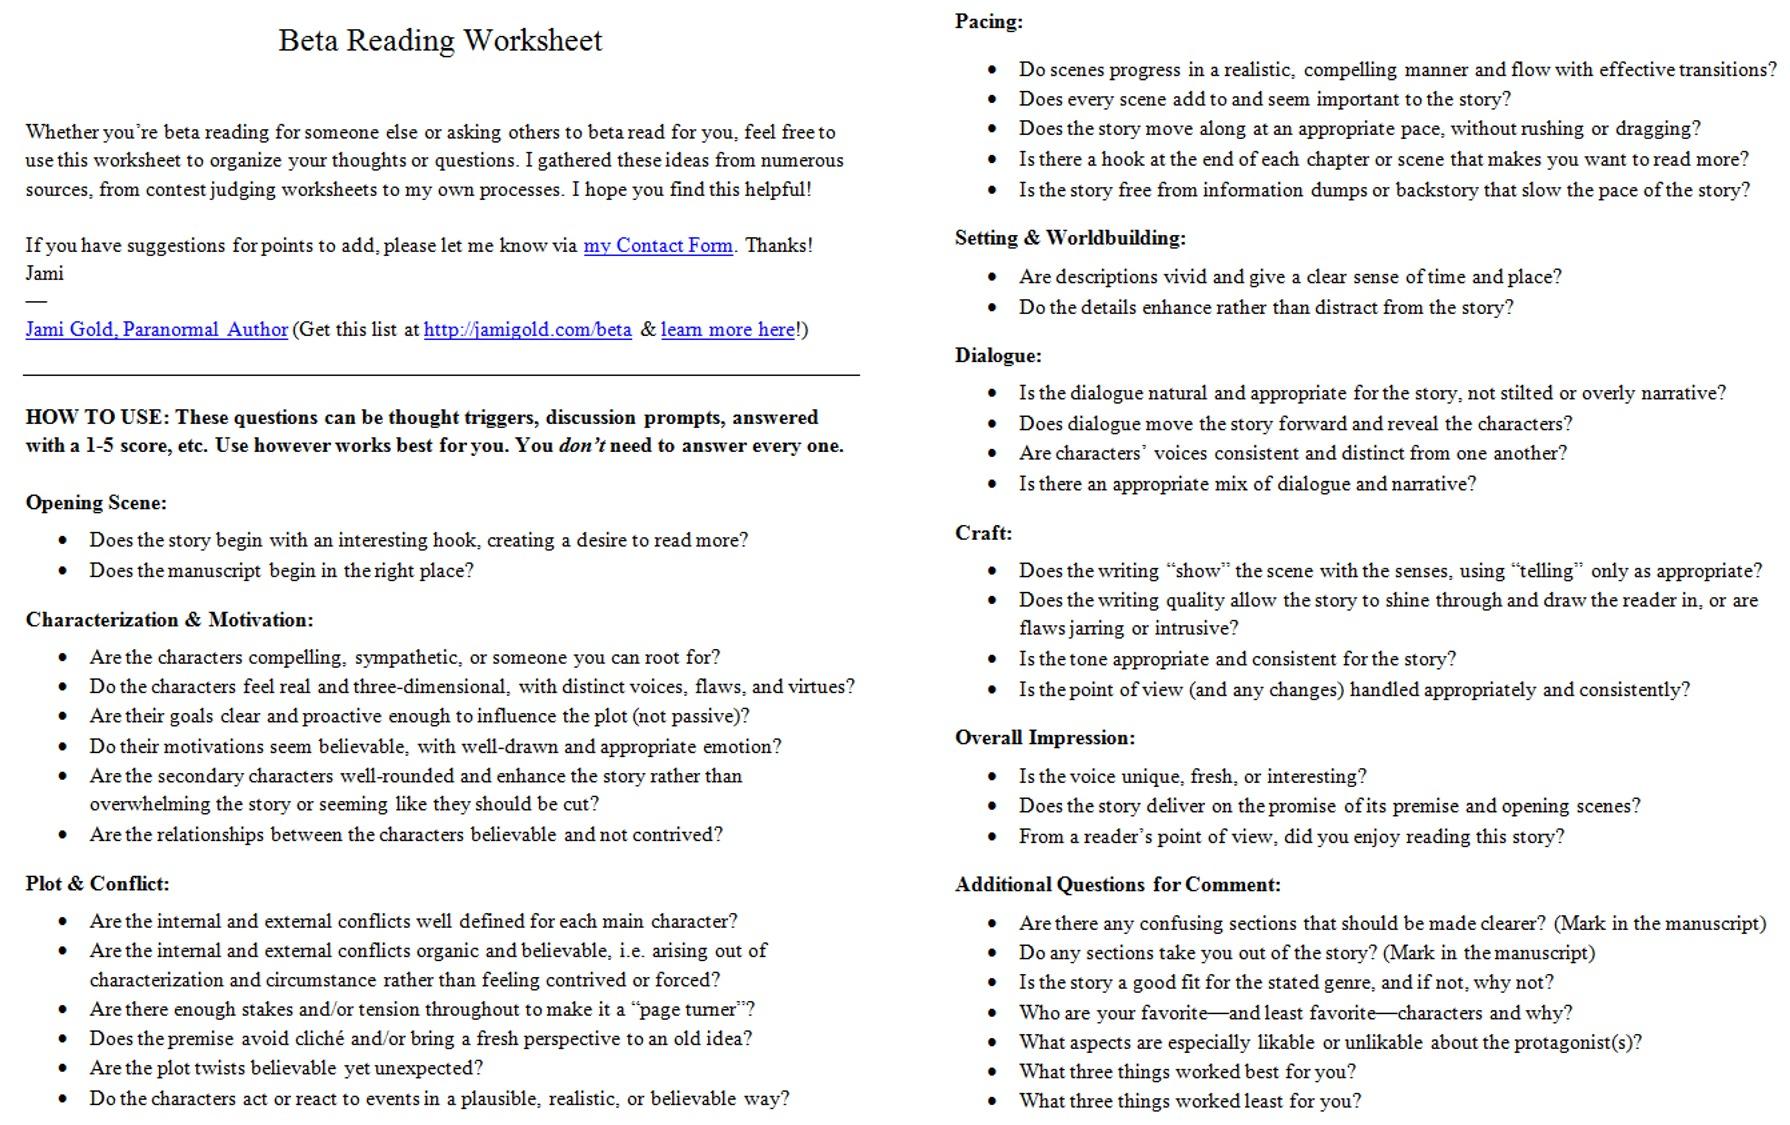 Aldiablosus  Remarkable Worksheets For Writers  Jami Gold Paranormal Author With Gorgeous Screen Shot Of The Twopage Beta Reading Worksheet With Alluring Vowels Worksheet For Kindergarten Also Make Own Worksheets In Addition Letter Worksheets For Preschool And Worksheet For Class  English Grammar As Well As Preposition Printable Worksheets Additionally Teaching English Grammar Worksheets From Jamigoldcom With Aldiablosus  Gorgeous Worksheets For Writers  Jami Gold Paranormal Author With Alluring Screen Shot Of The Twopage Beta Reading Worksheet And Remarkable Vowels Worksheet For Kindergarten Also Make Own Worksheets In Addition Letter Worksheets For Preschool From Jamigoldcom